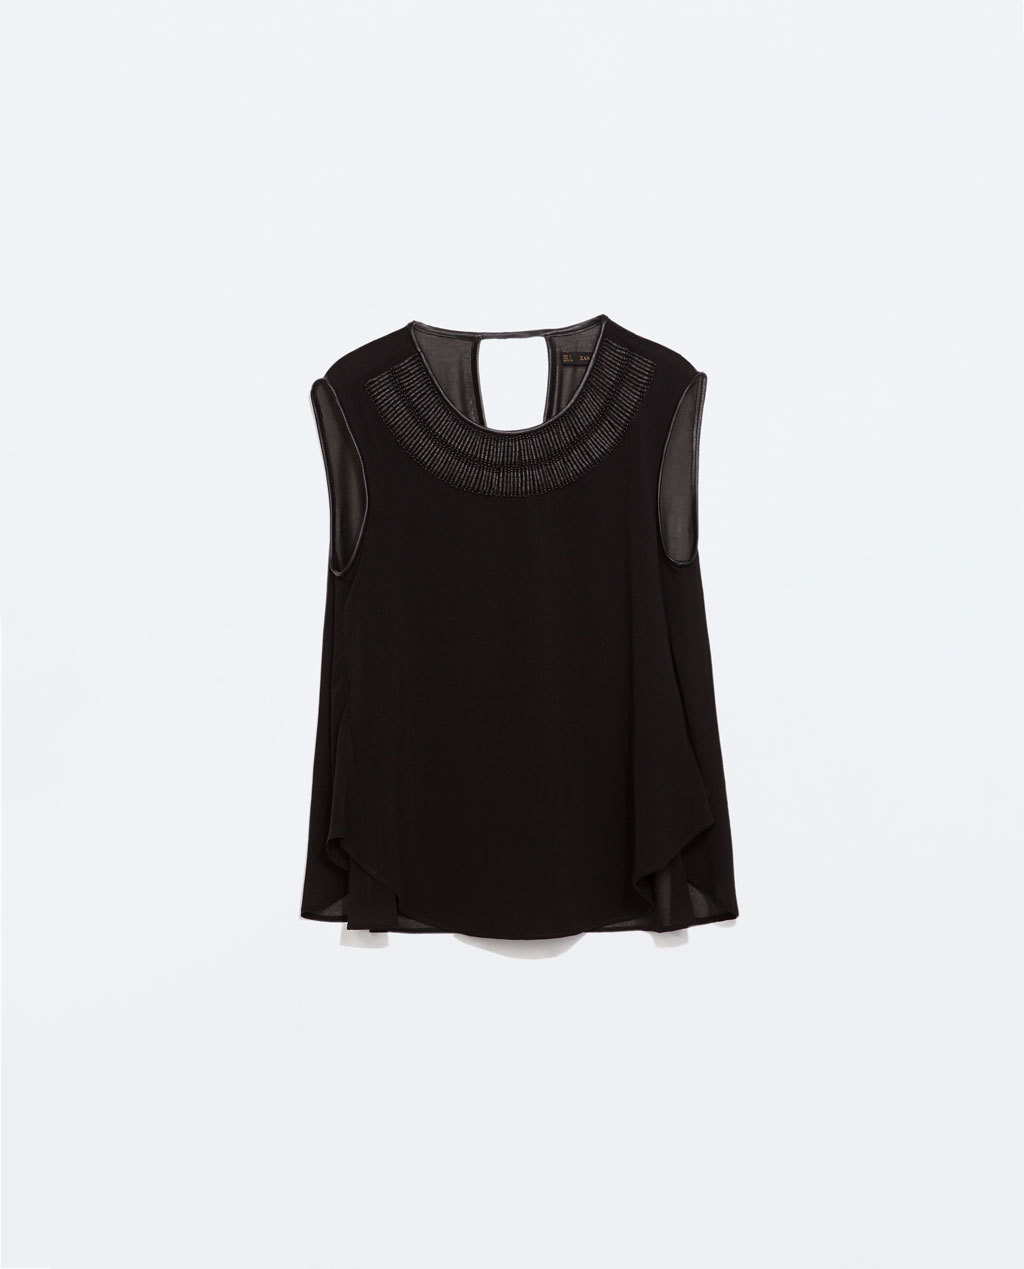 Top With AppliquÉ On Collar - neckline: round neck; pattern: plain; sleeve style: sleeveless; predominant colour: black; occasions: evening, creative work; length: standard; style: top; fibres: polyester/polyamide - 100%; fit: loose; back detail: keyhole/peephole detail at back; sleeve length: sleeveless; texture group: sheer fabrics/chiffon/organza etc.; pattern type: fabric; embellishment: beading; season: a/w 2014; embellishment location: bust